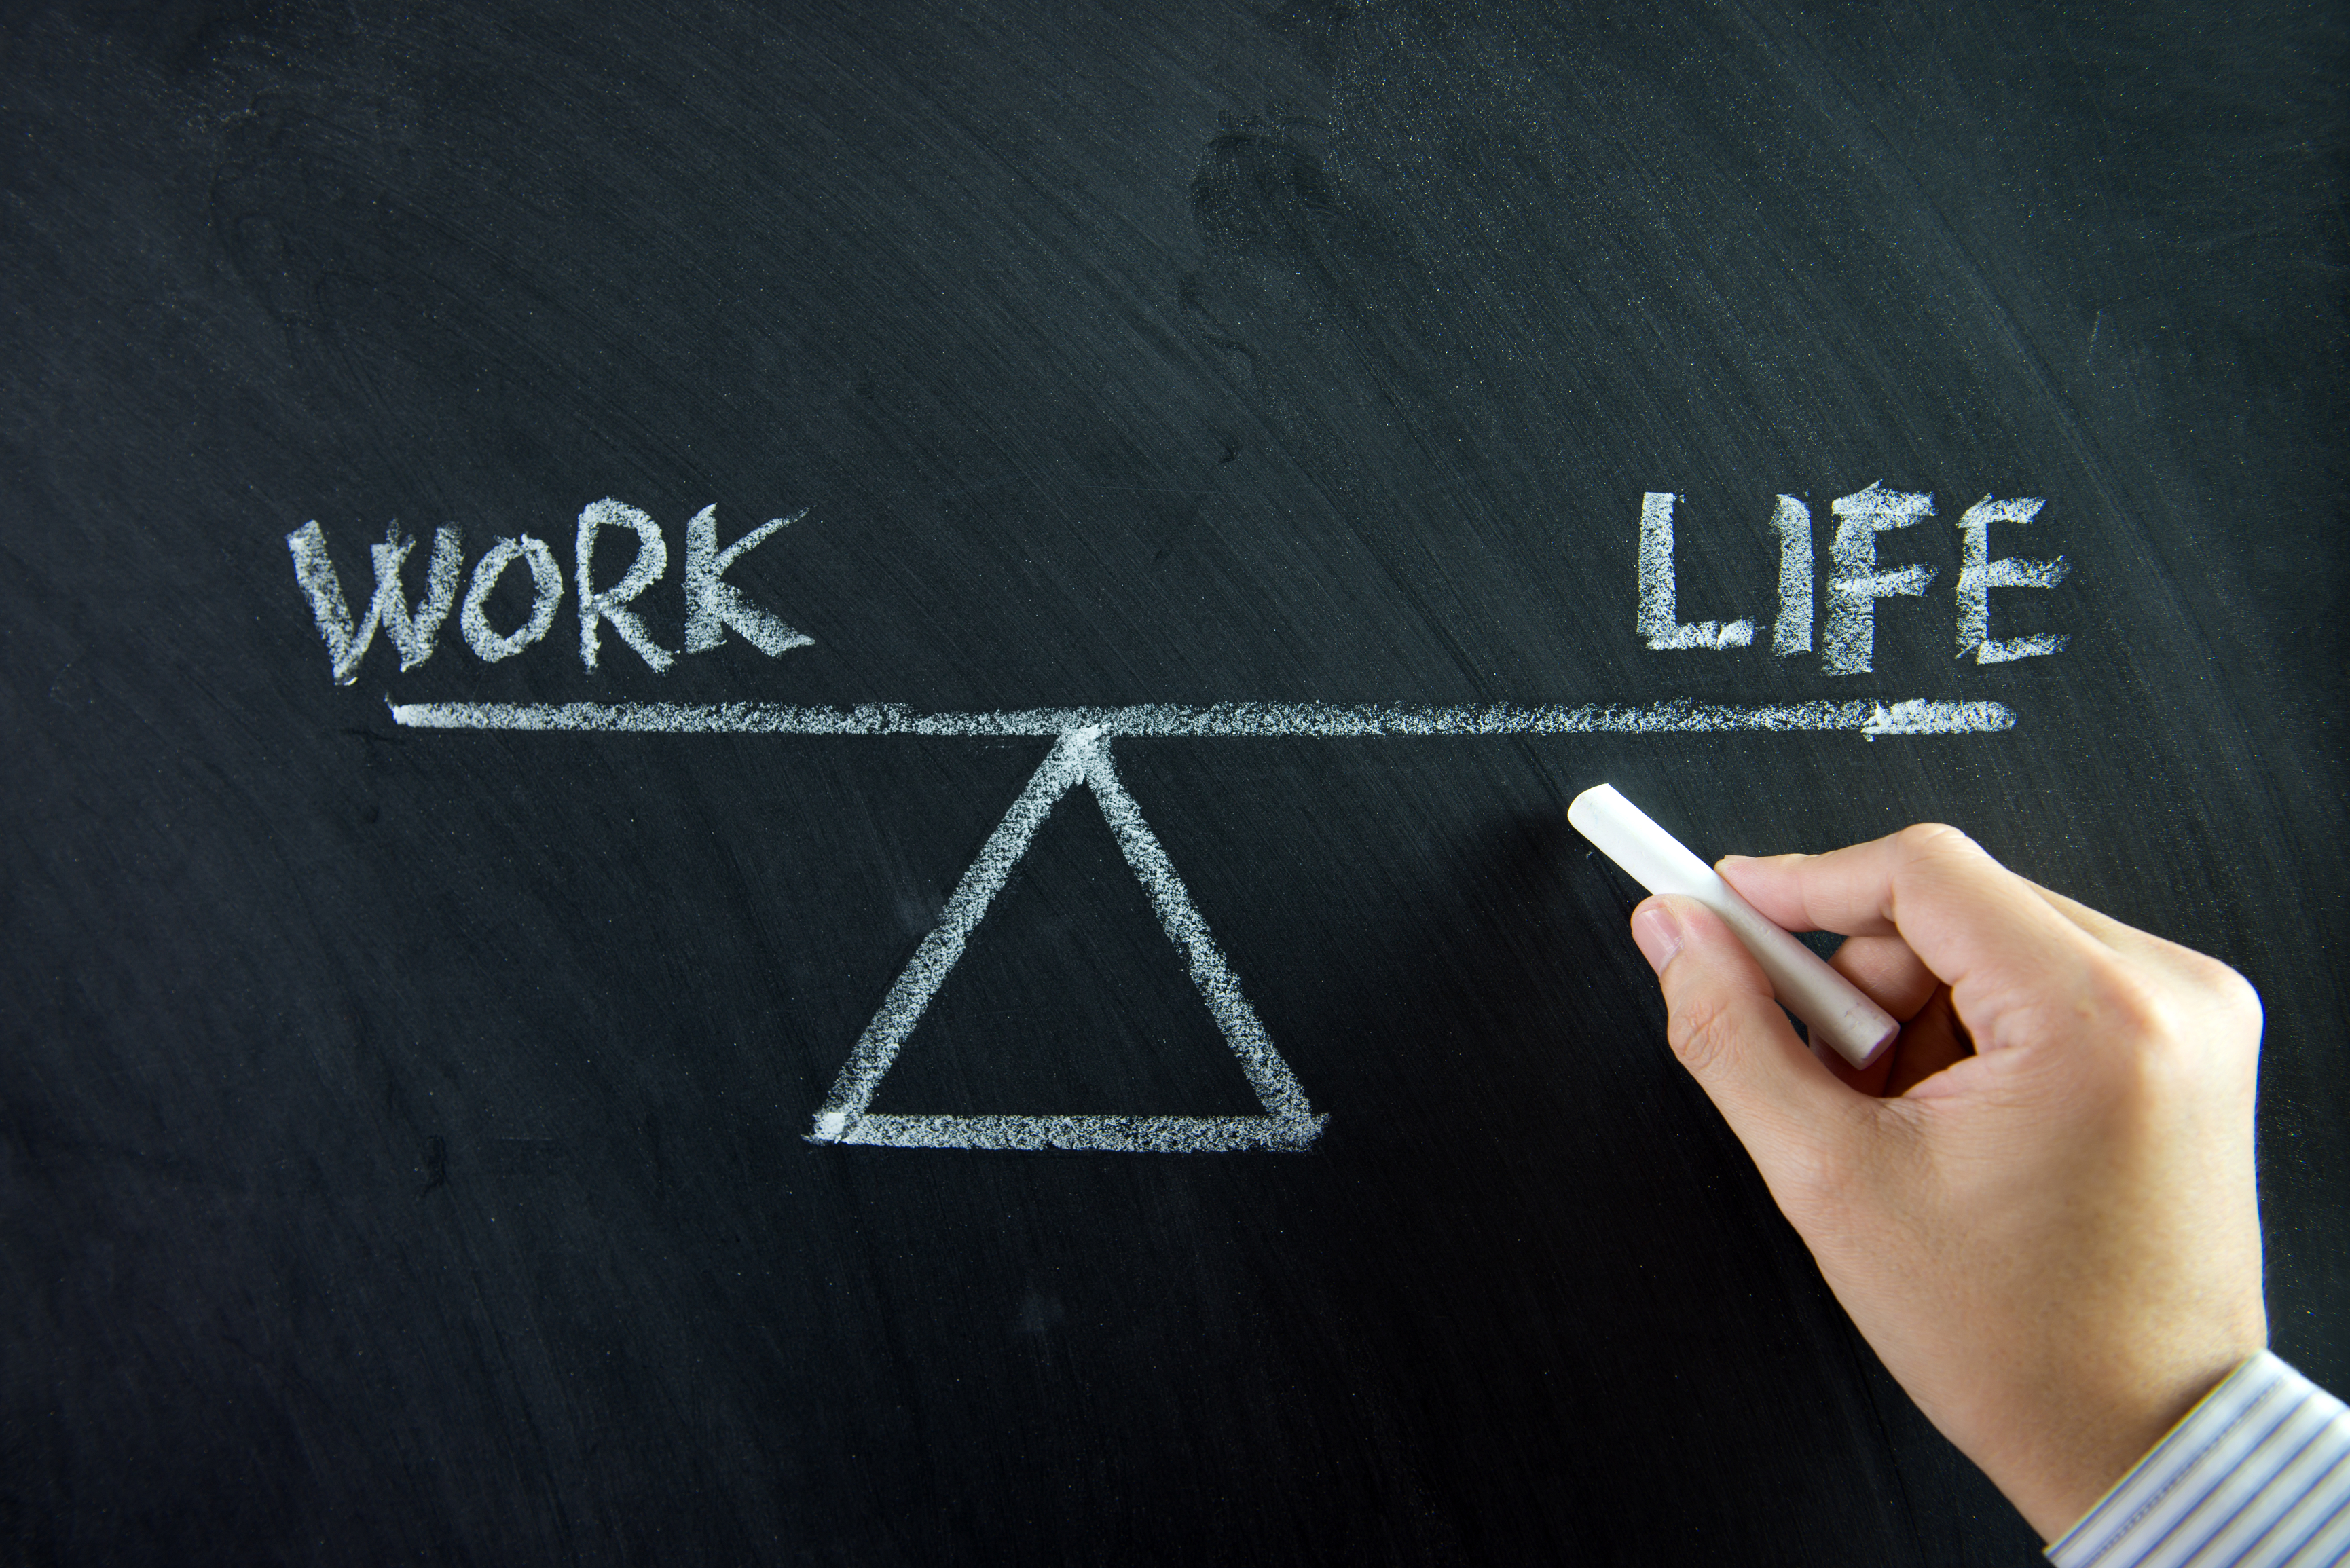 reflection on work and life balance Do you need an inspirational quote for your newsletter, website, presentation, or inspirational posters find quotes on a variety of work-related topics.